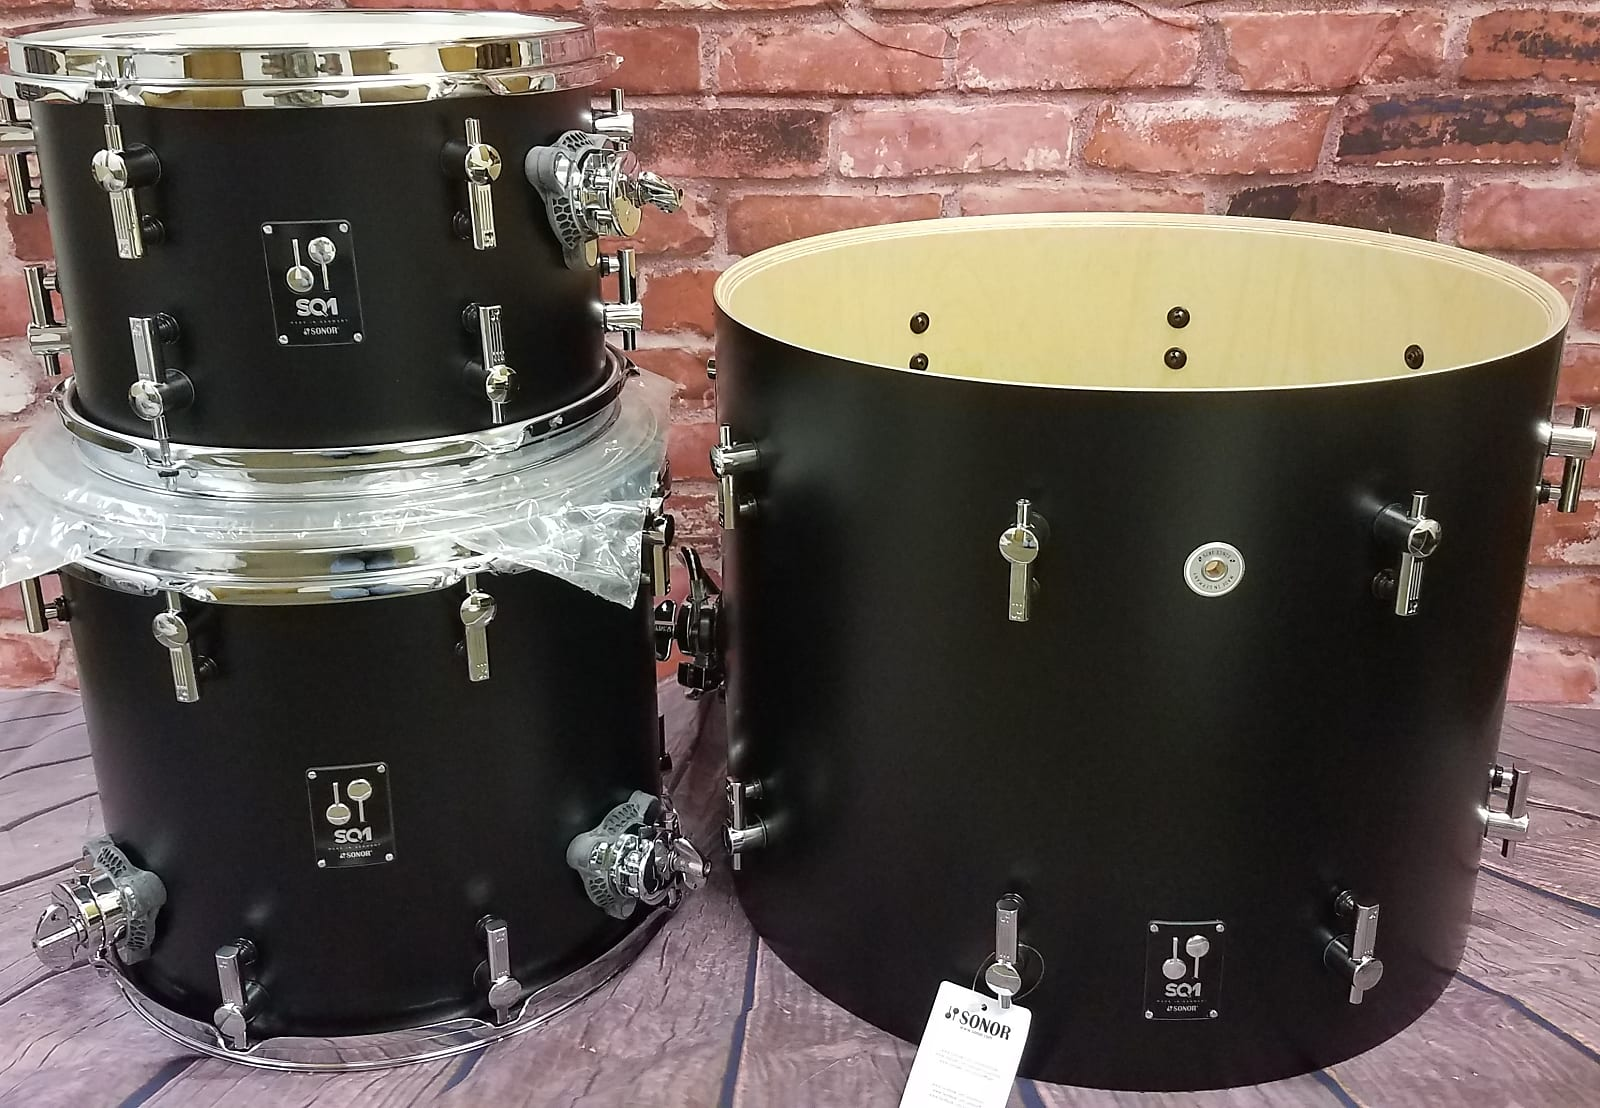 Sonor SQ1 Black 20x16/12x8/14x13 Jazz Bop Kit Drums Shell Pack | +FREE Bags | NEW Authorized Dealer